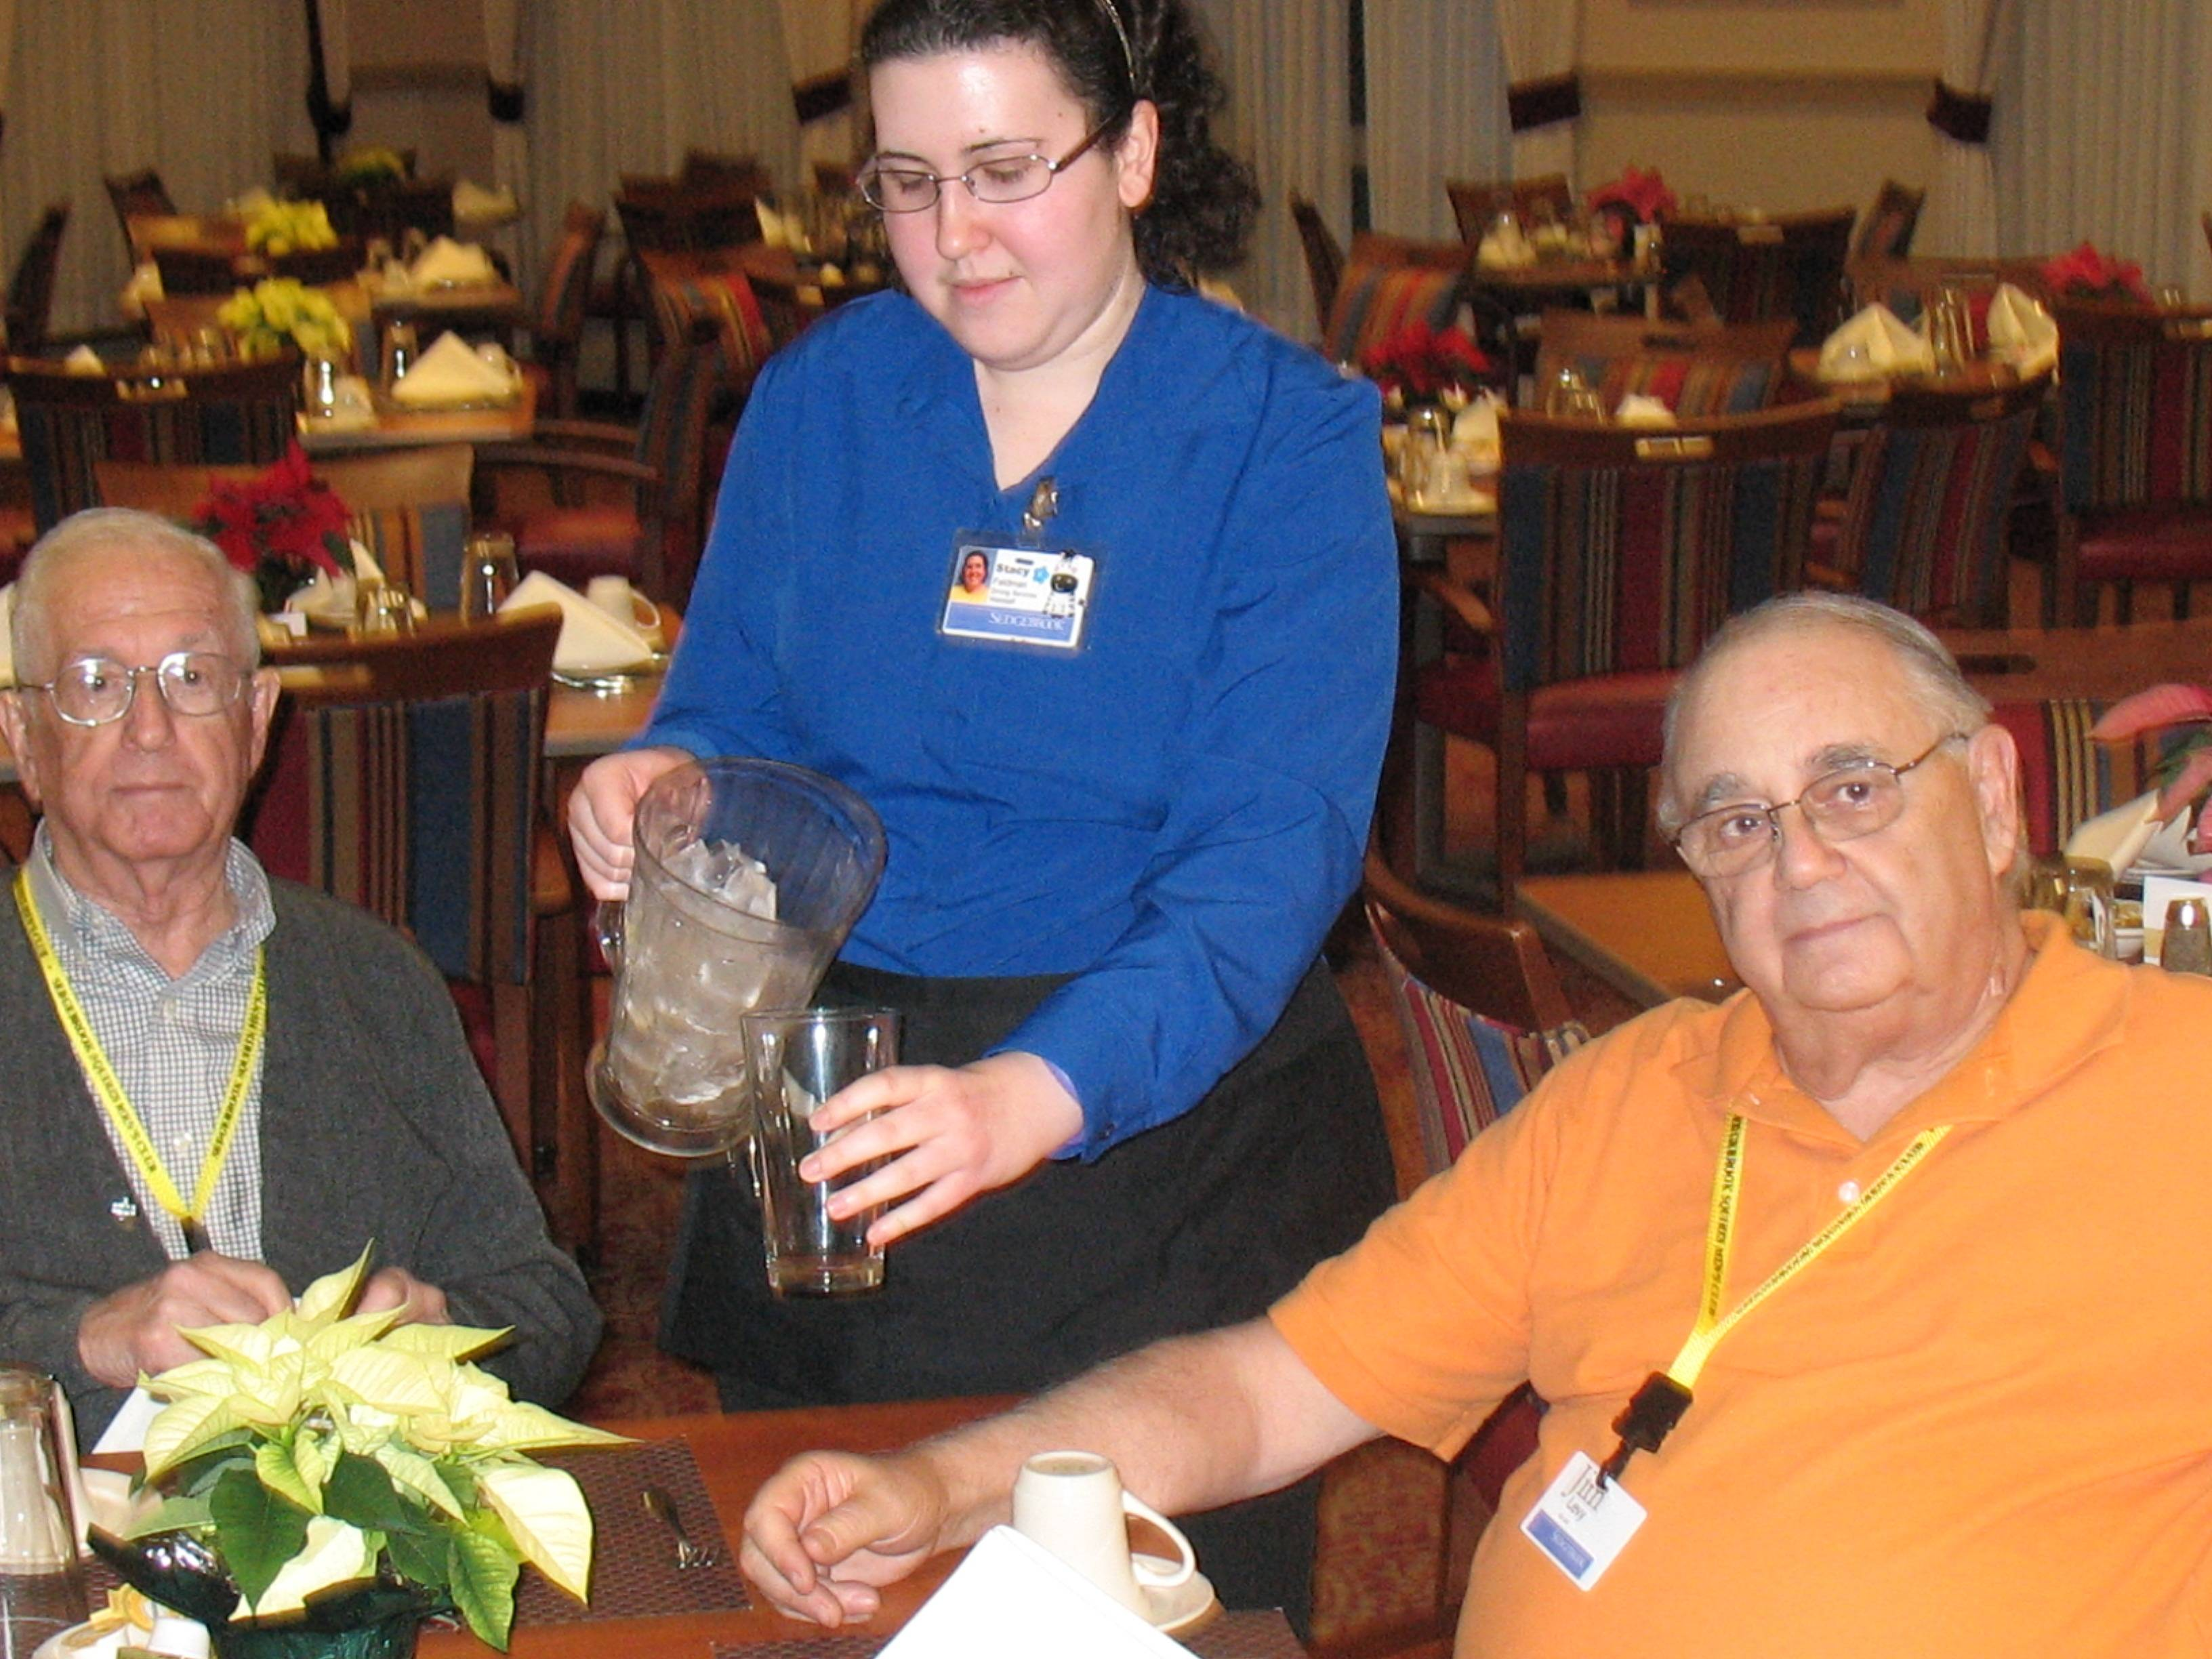 Residents and Servers at Sedgebrook retirement community in Lincolnshire make lasting connections.